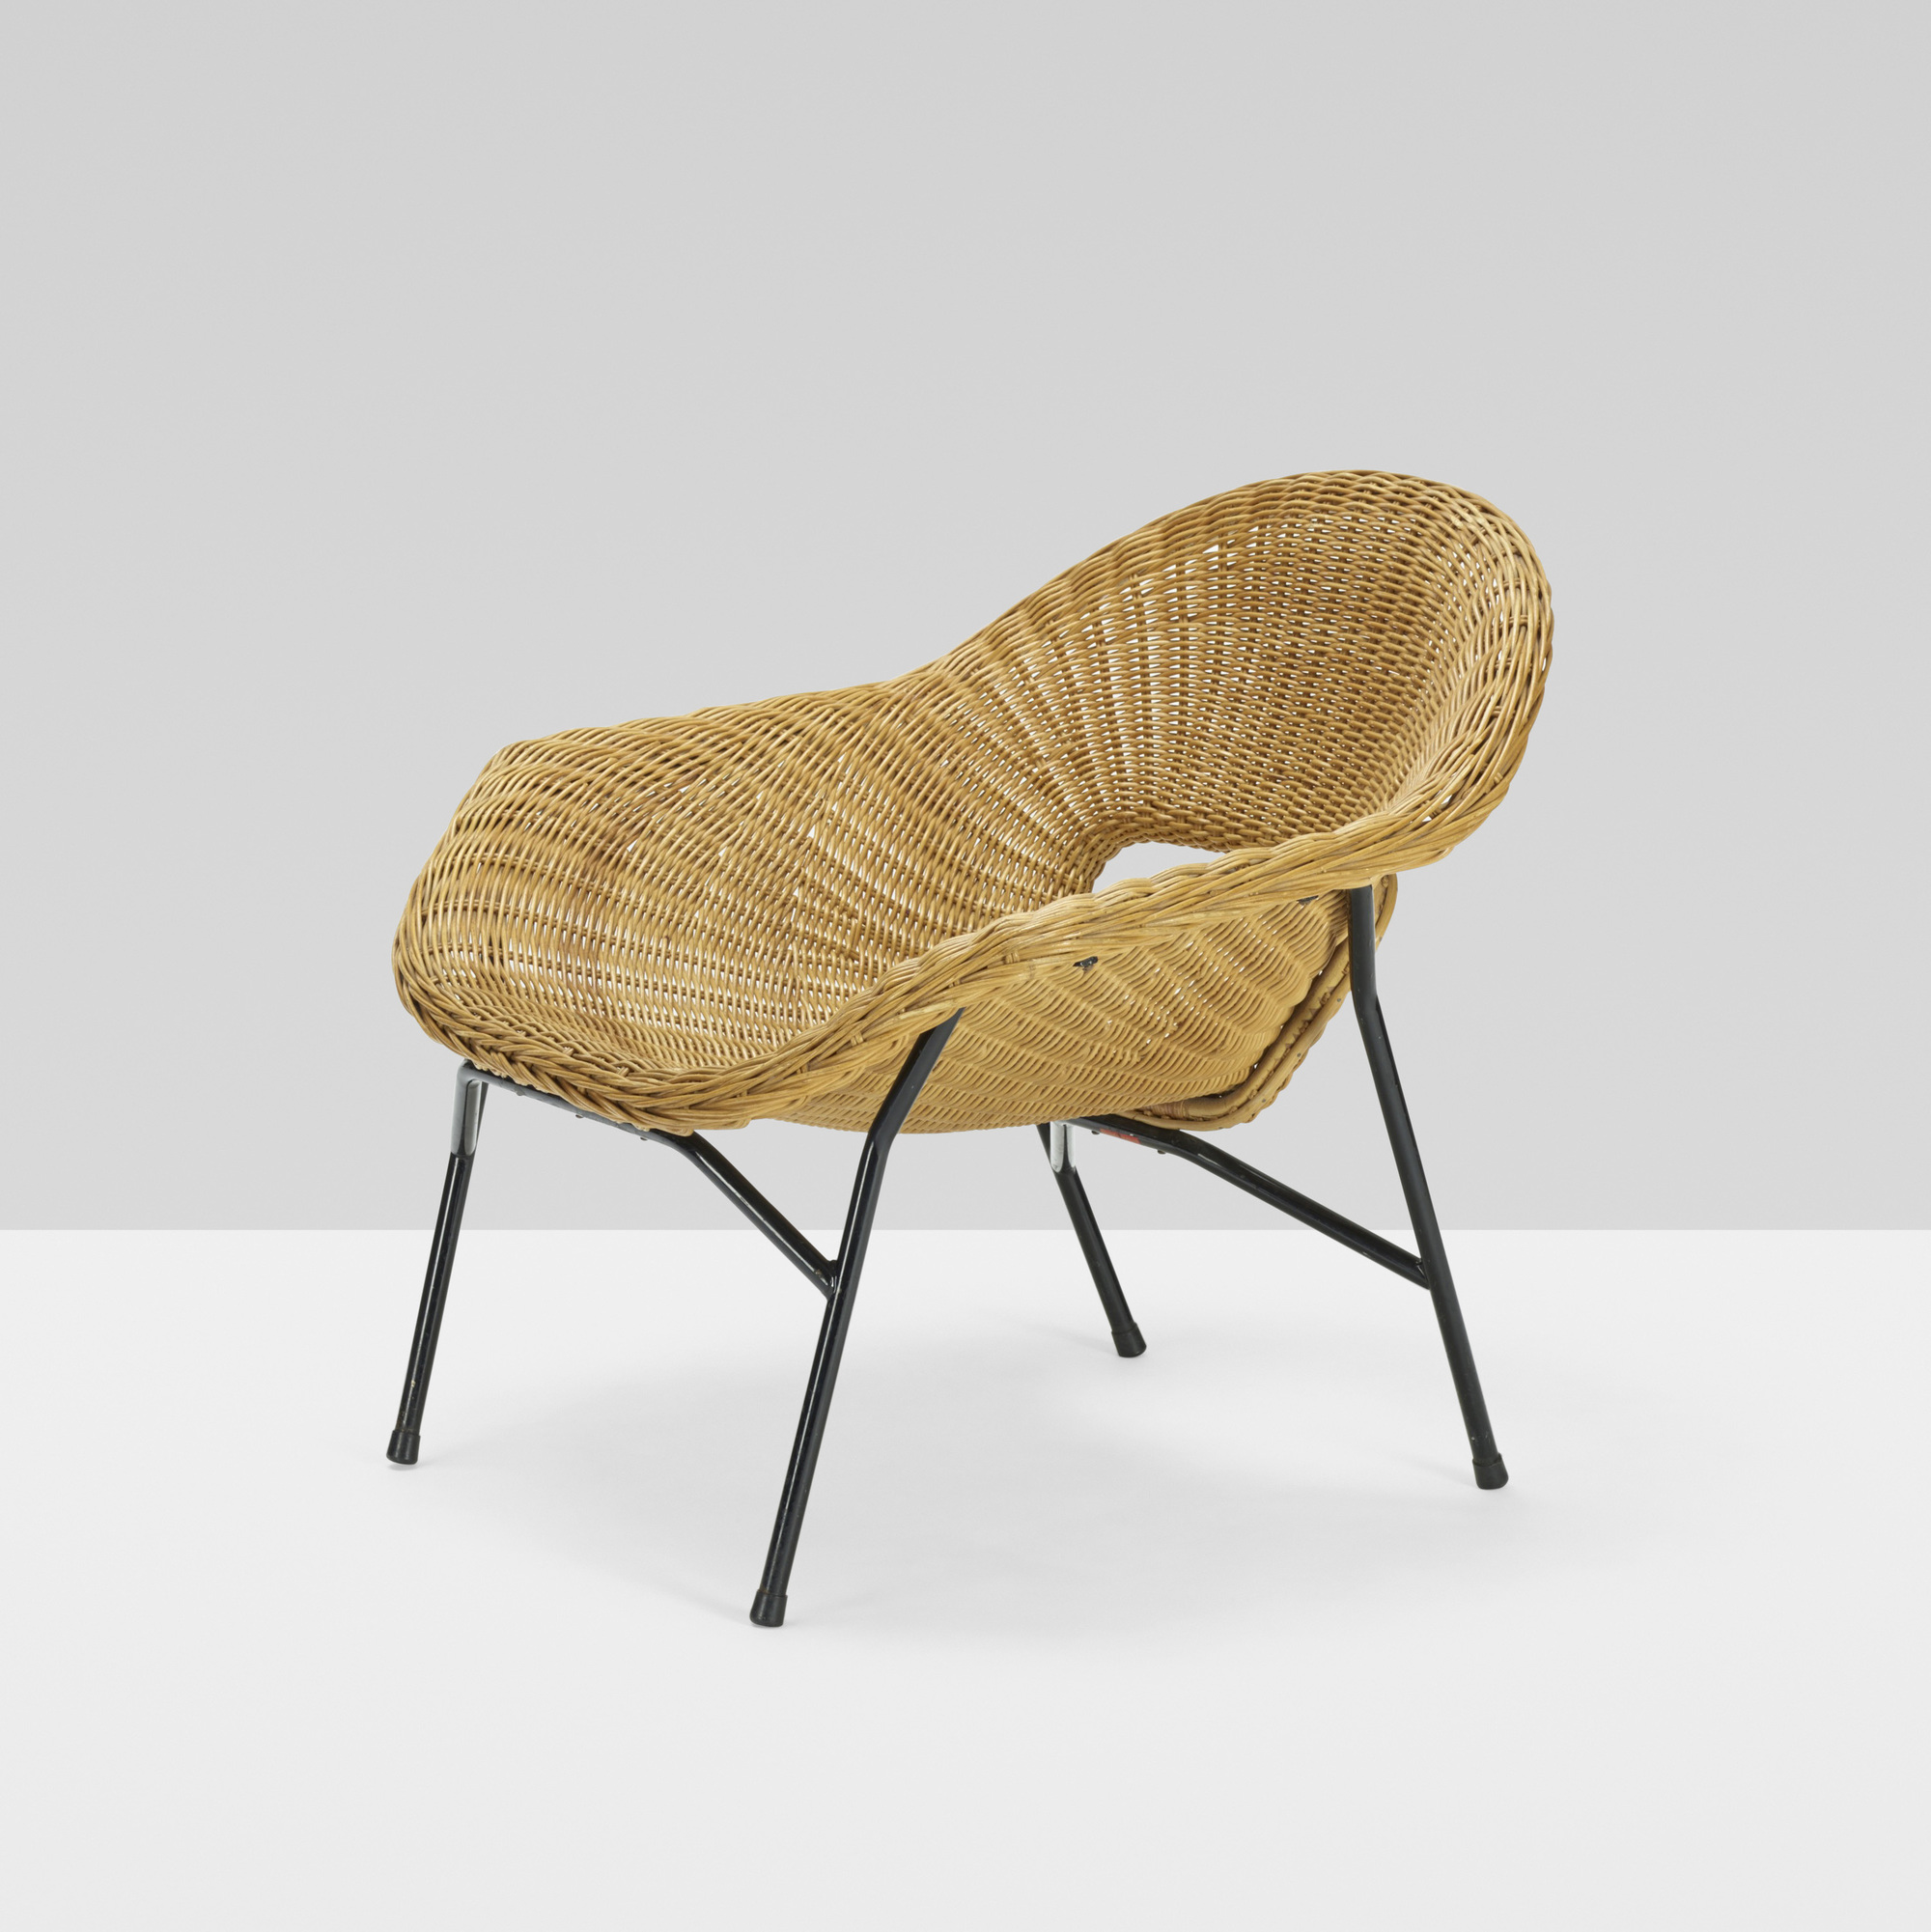 382: P.J Muntendam / lounge chair (2 of 5)